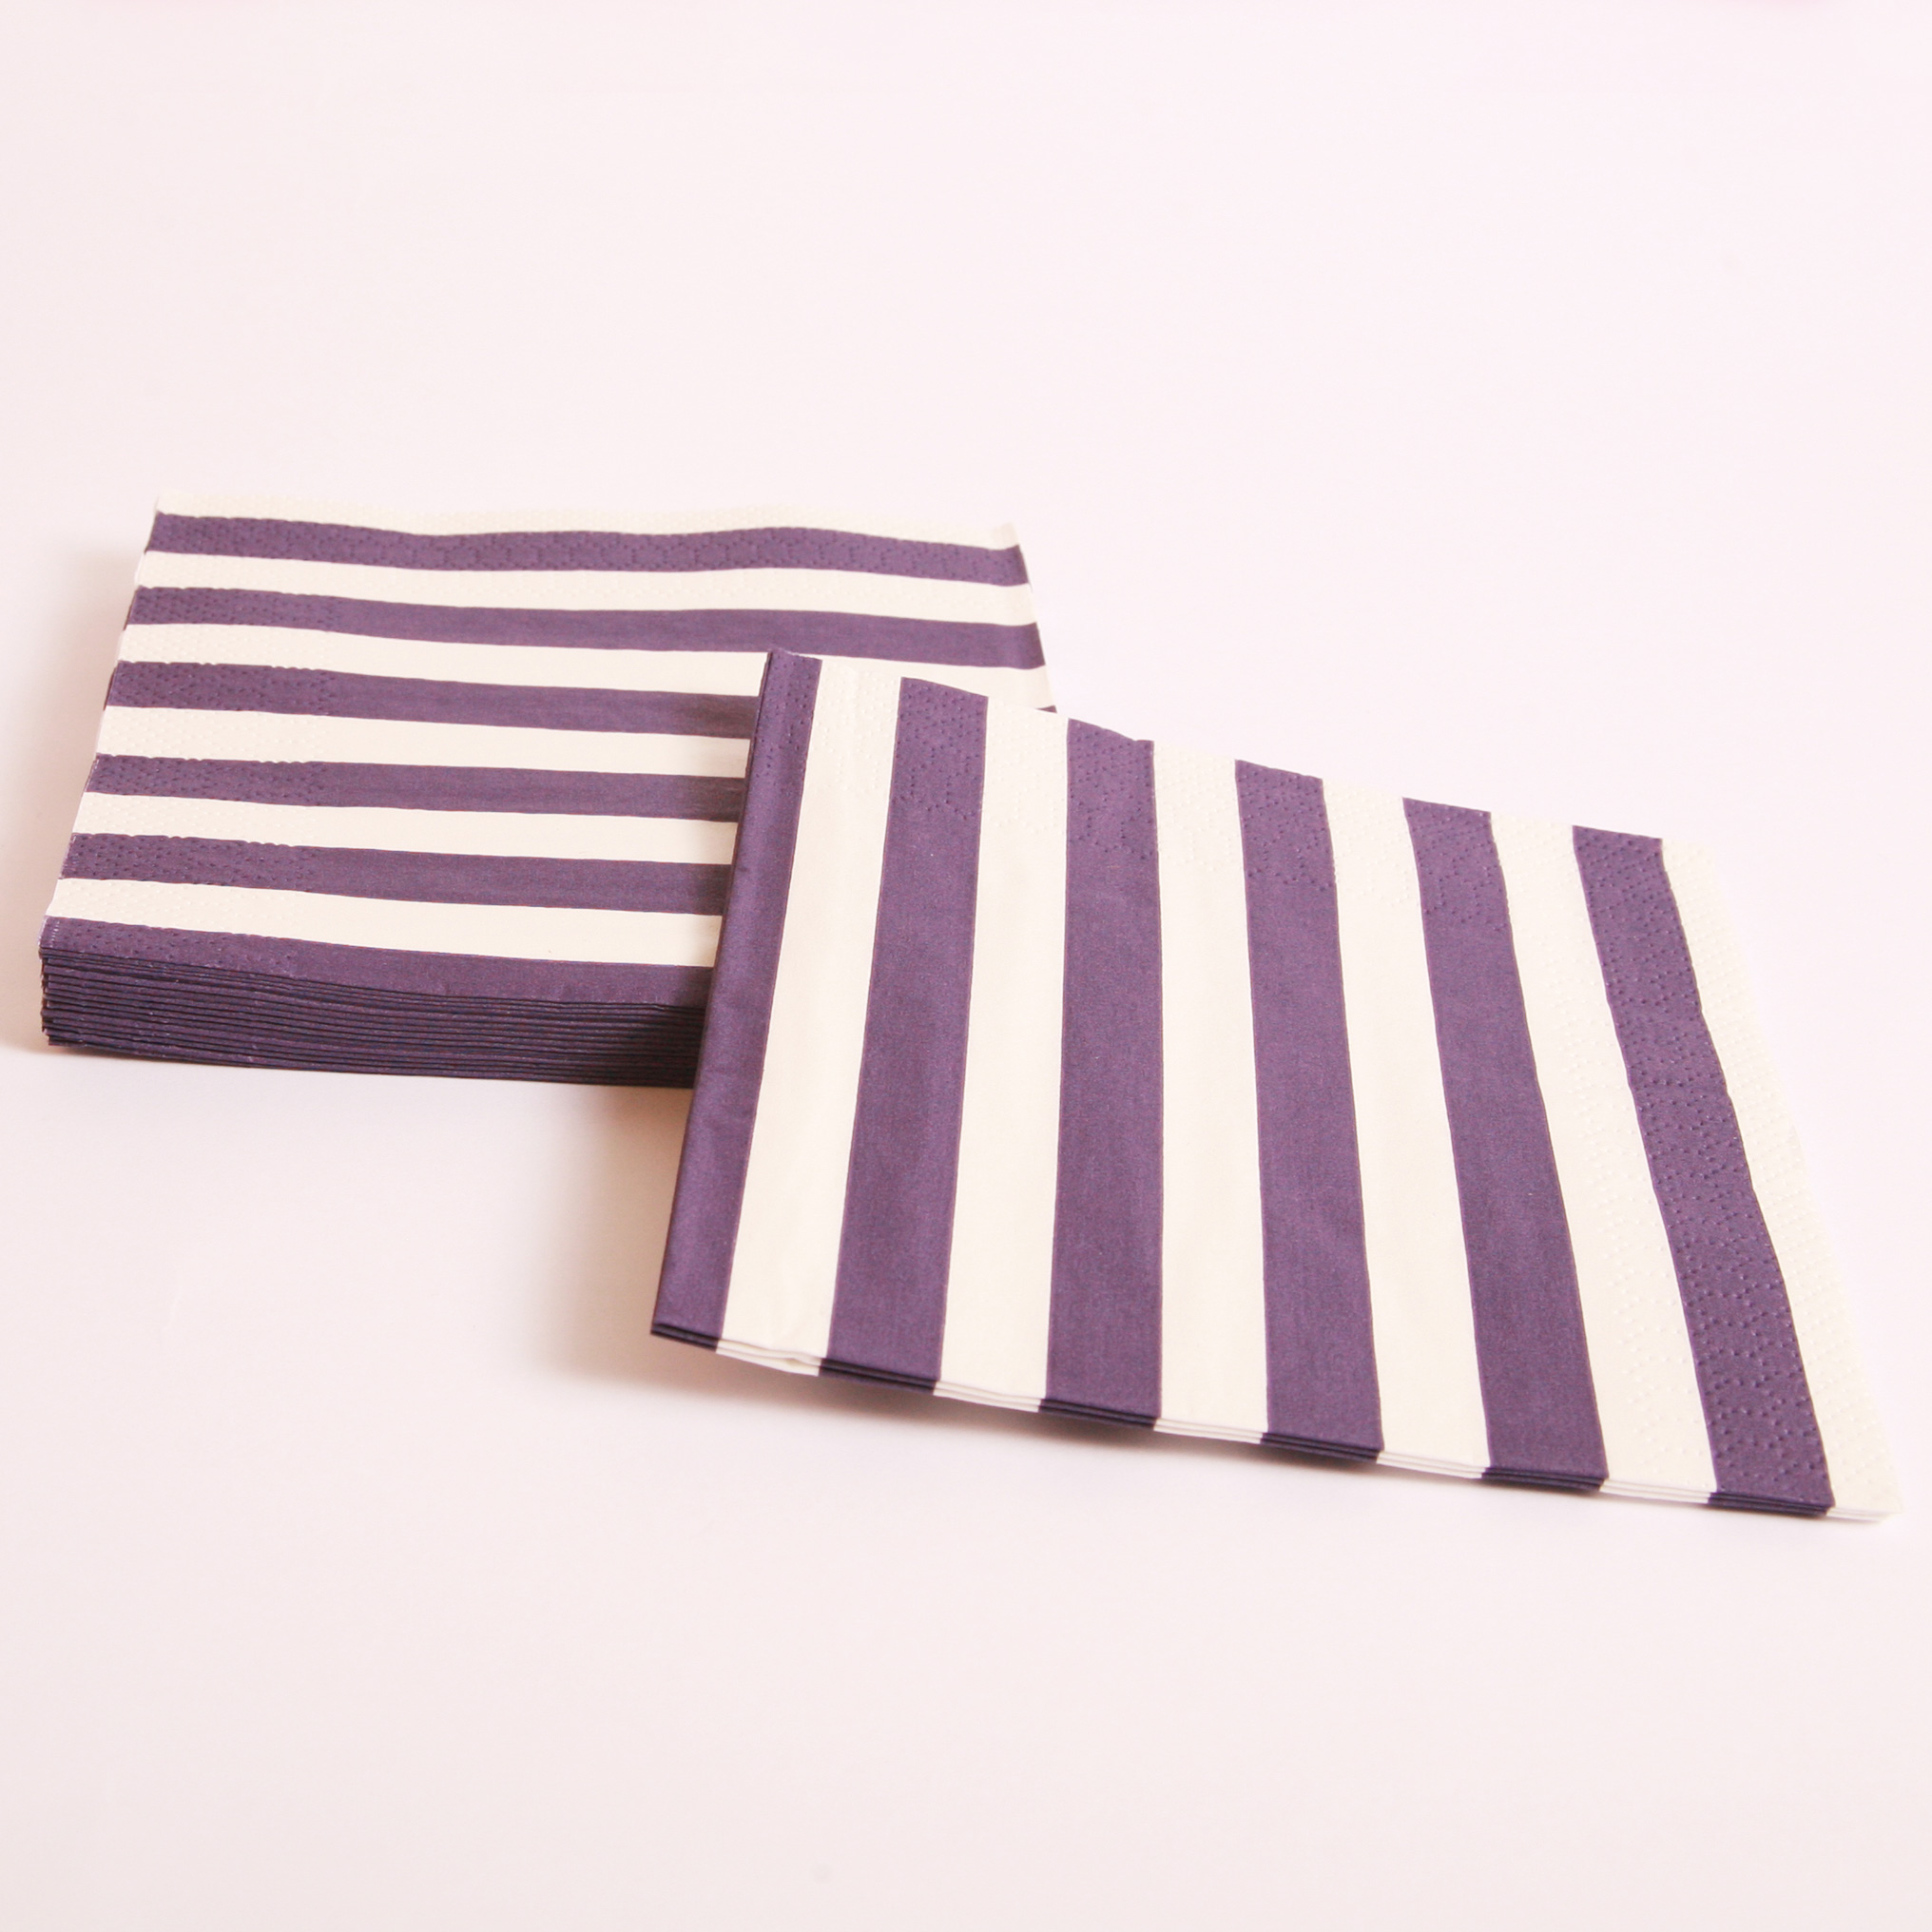 16 purple and white striped napkins